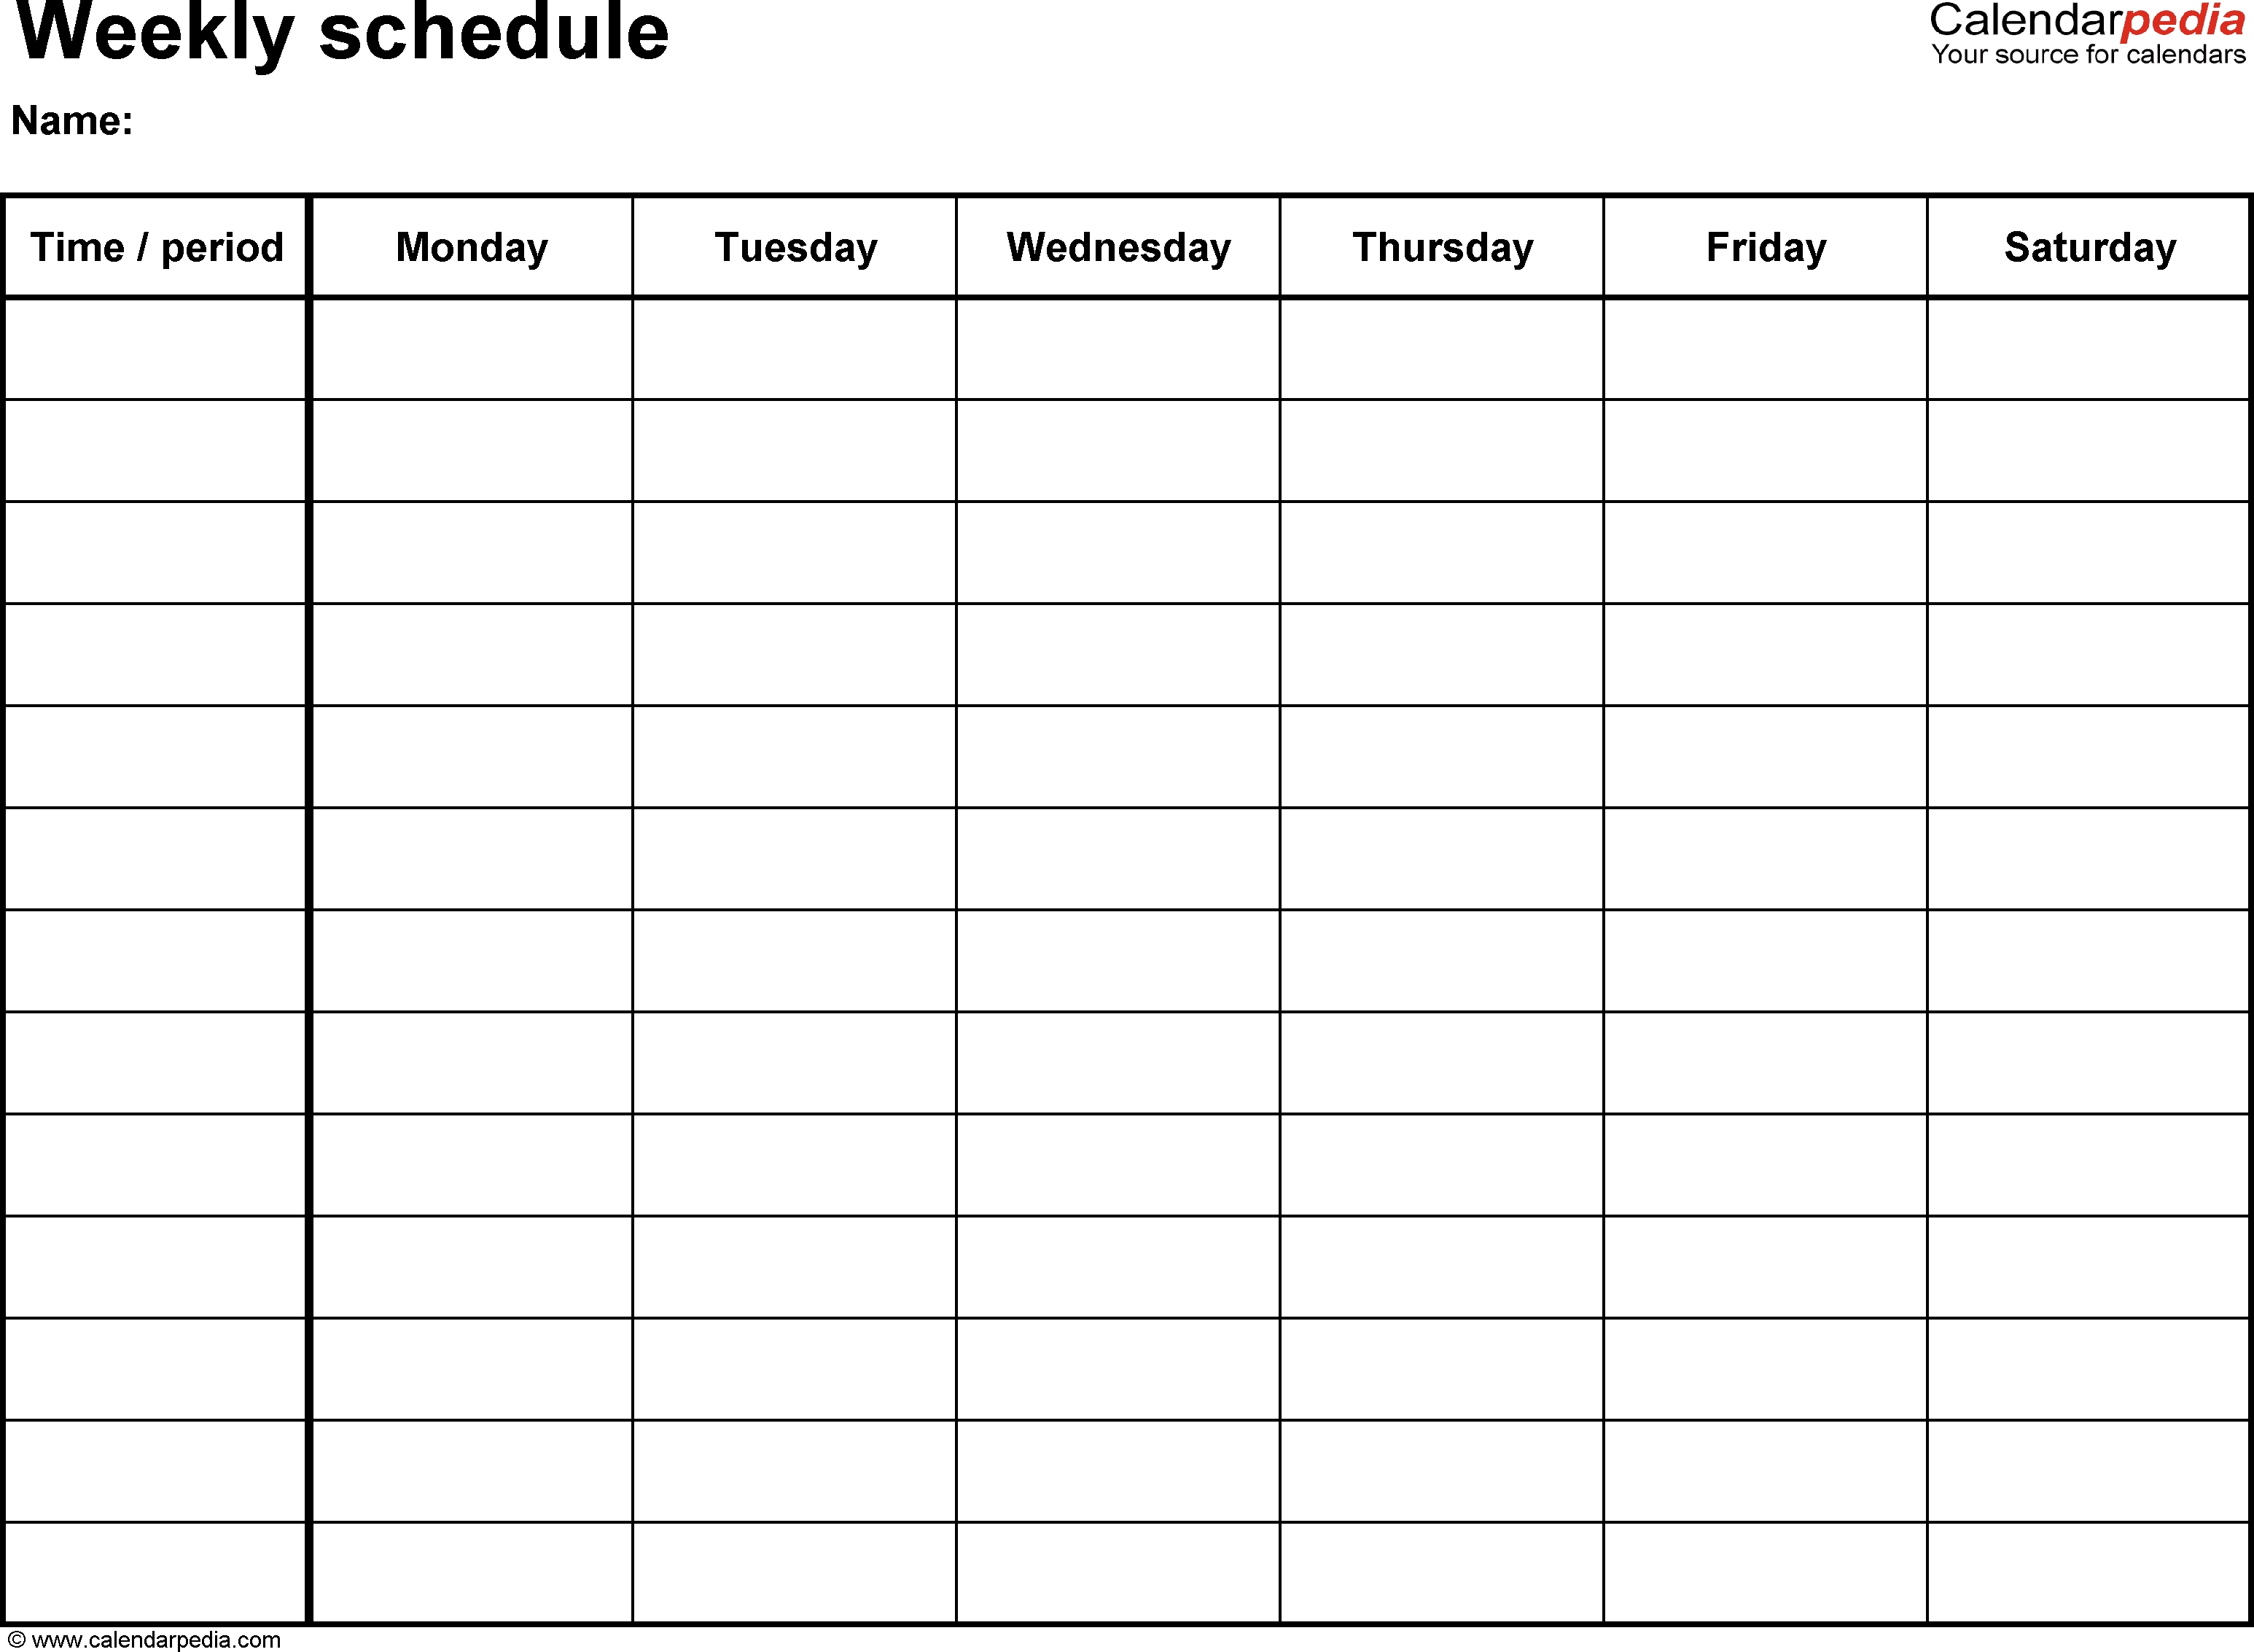 Free Weekly Schedule Templates For Pdf - 18 Templates for Blank Weekly Schedule Template Printable